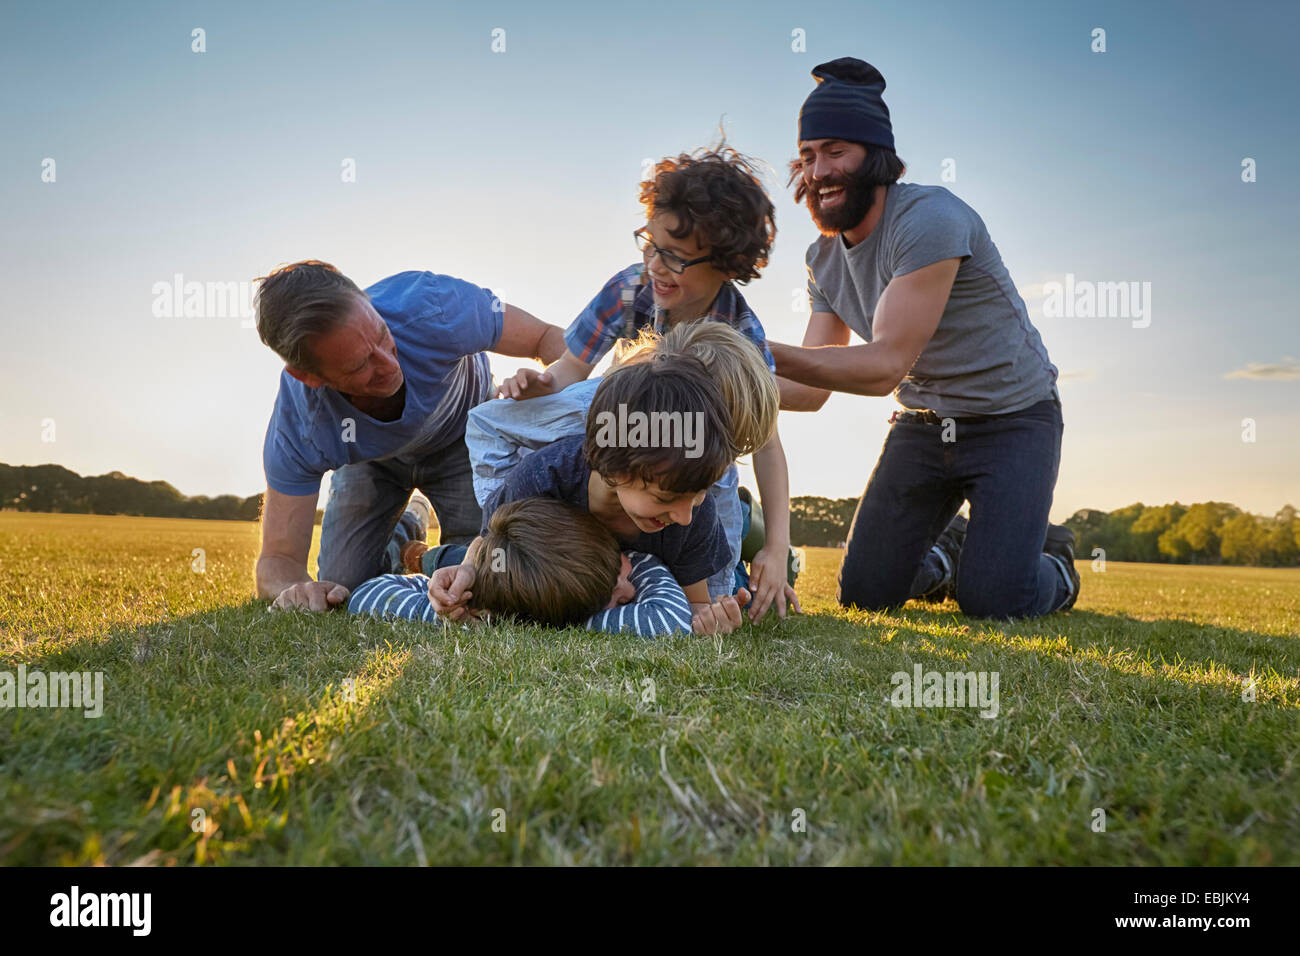 Family enjoying outdoor activities in the park - Stock Image